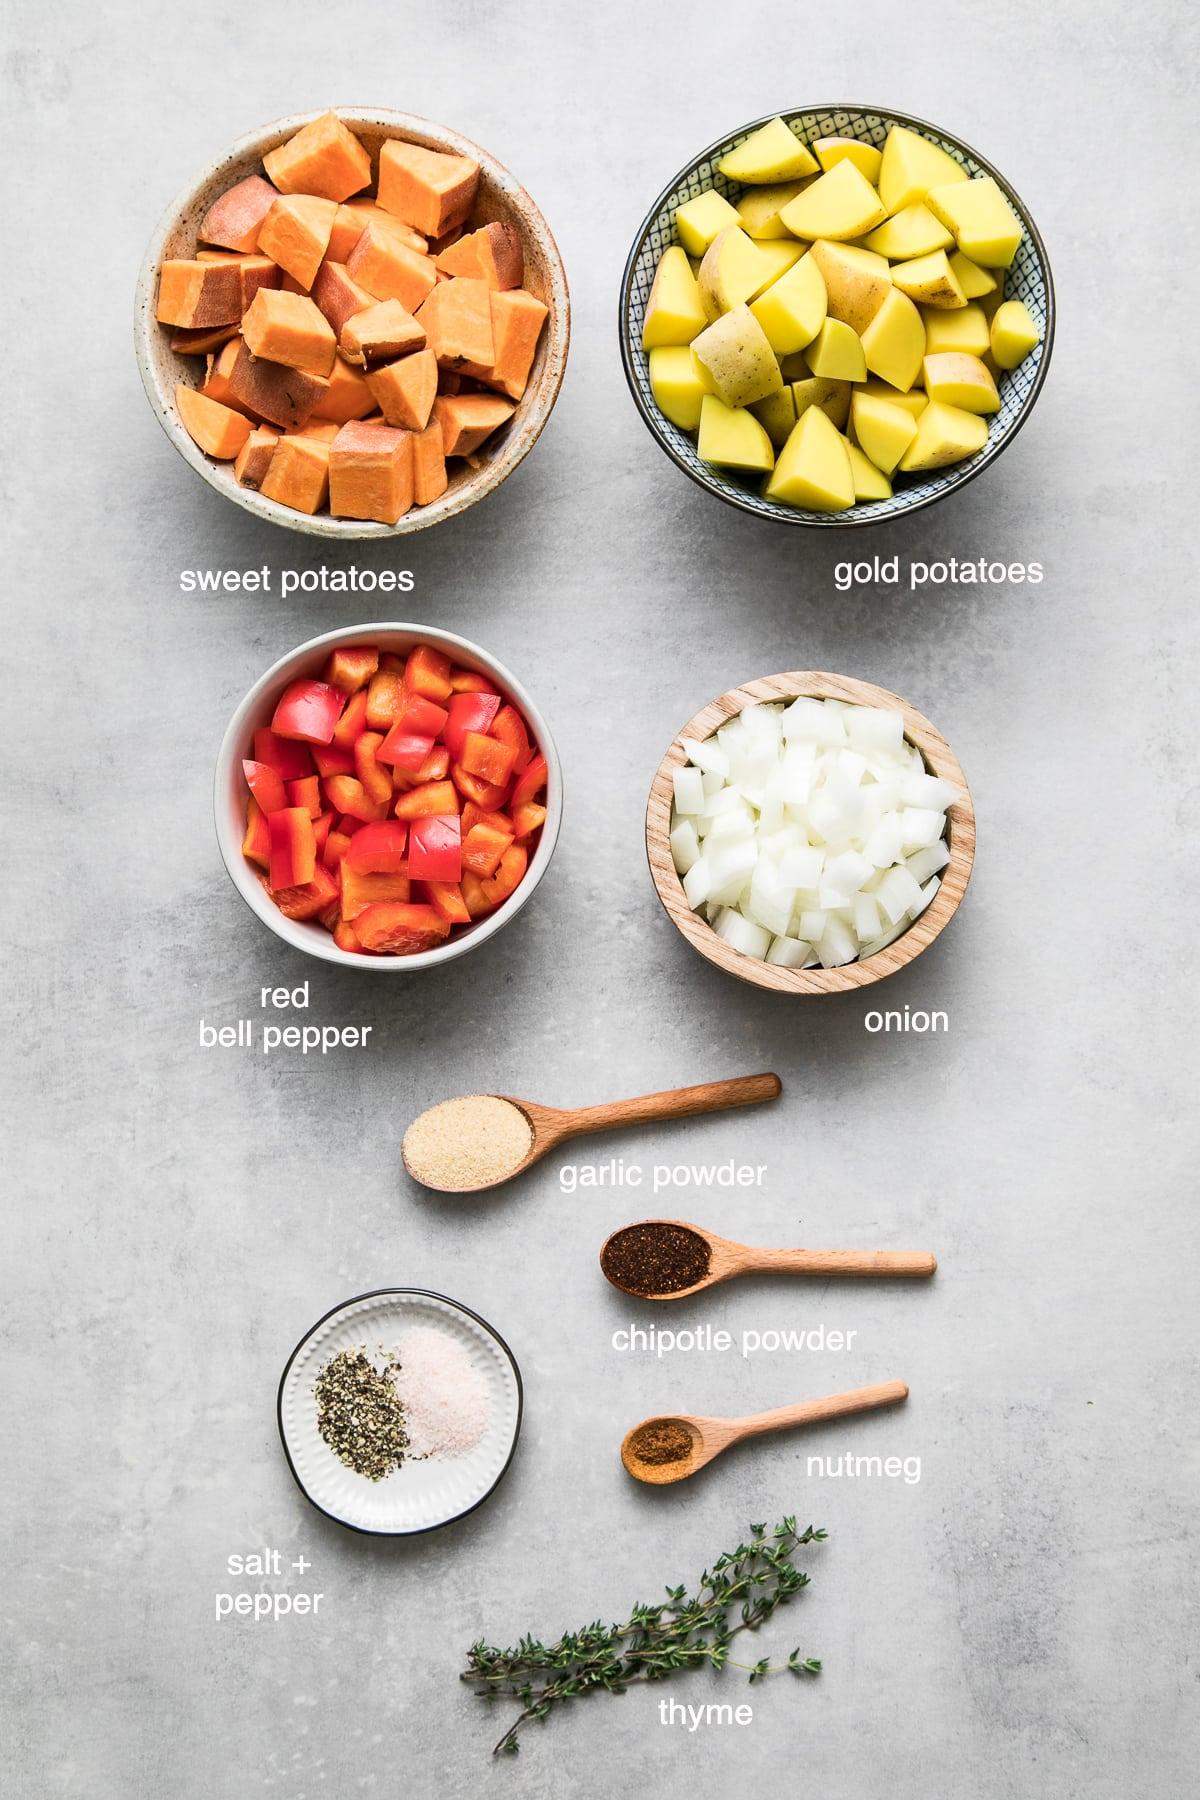 top down view of ingredients used to make yukon and sweet potato home fries.